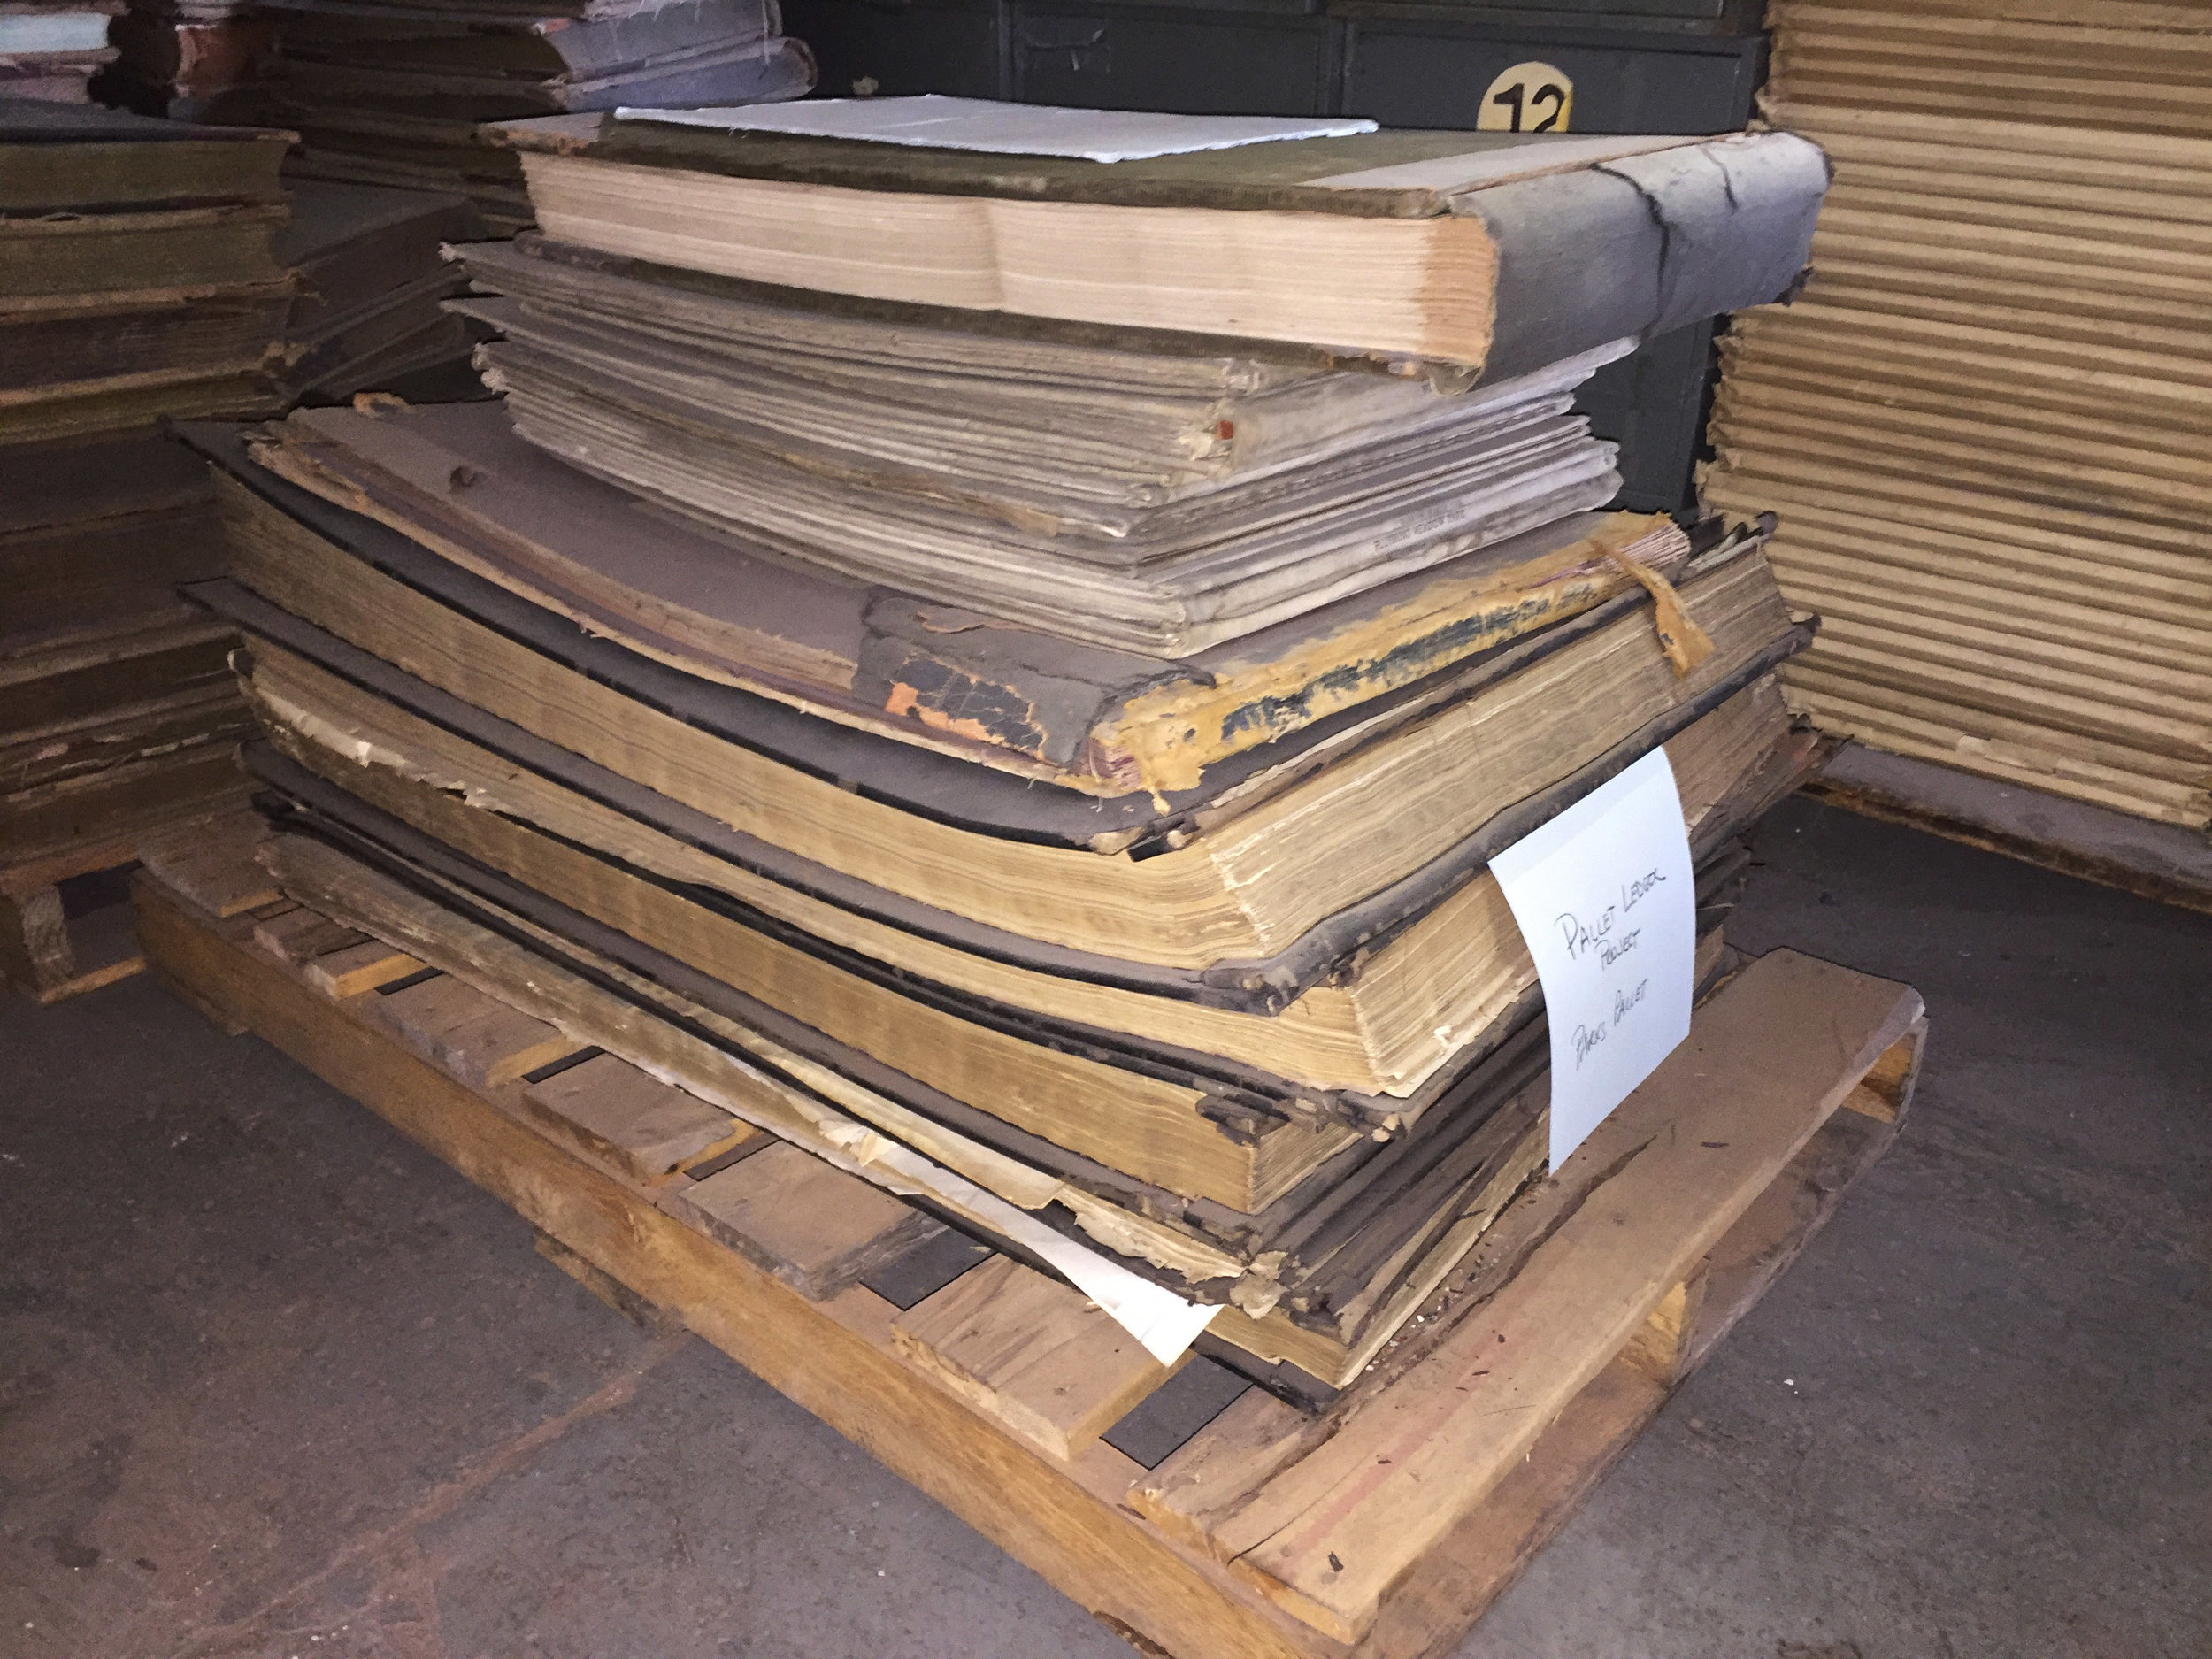 Some of the ledgers saved after a review of pallets at the Municipal Archives warehouse.